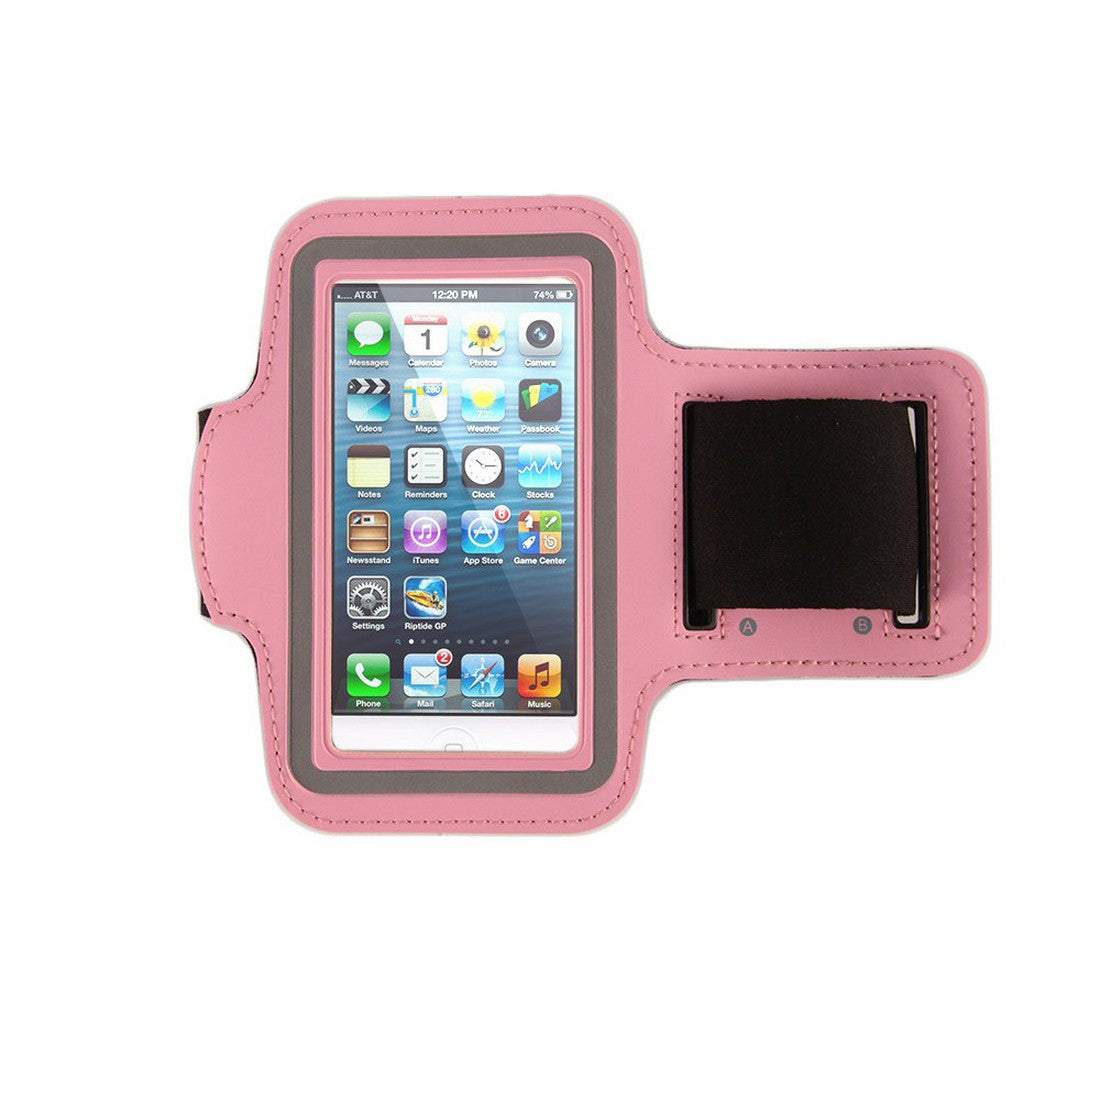 Neoprene Armband Size 01 For Iphone 4G/4S/5/5C/5S & I touch 5th Gen & Samsung i437/s4M & LG W7 & kyocera C6721/C5120 & Nokia 521 Pink